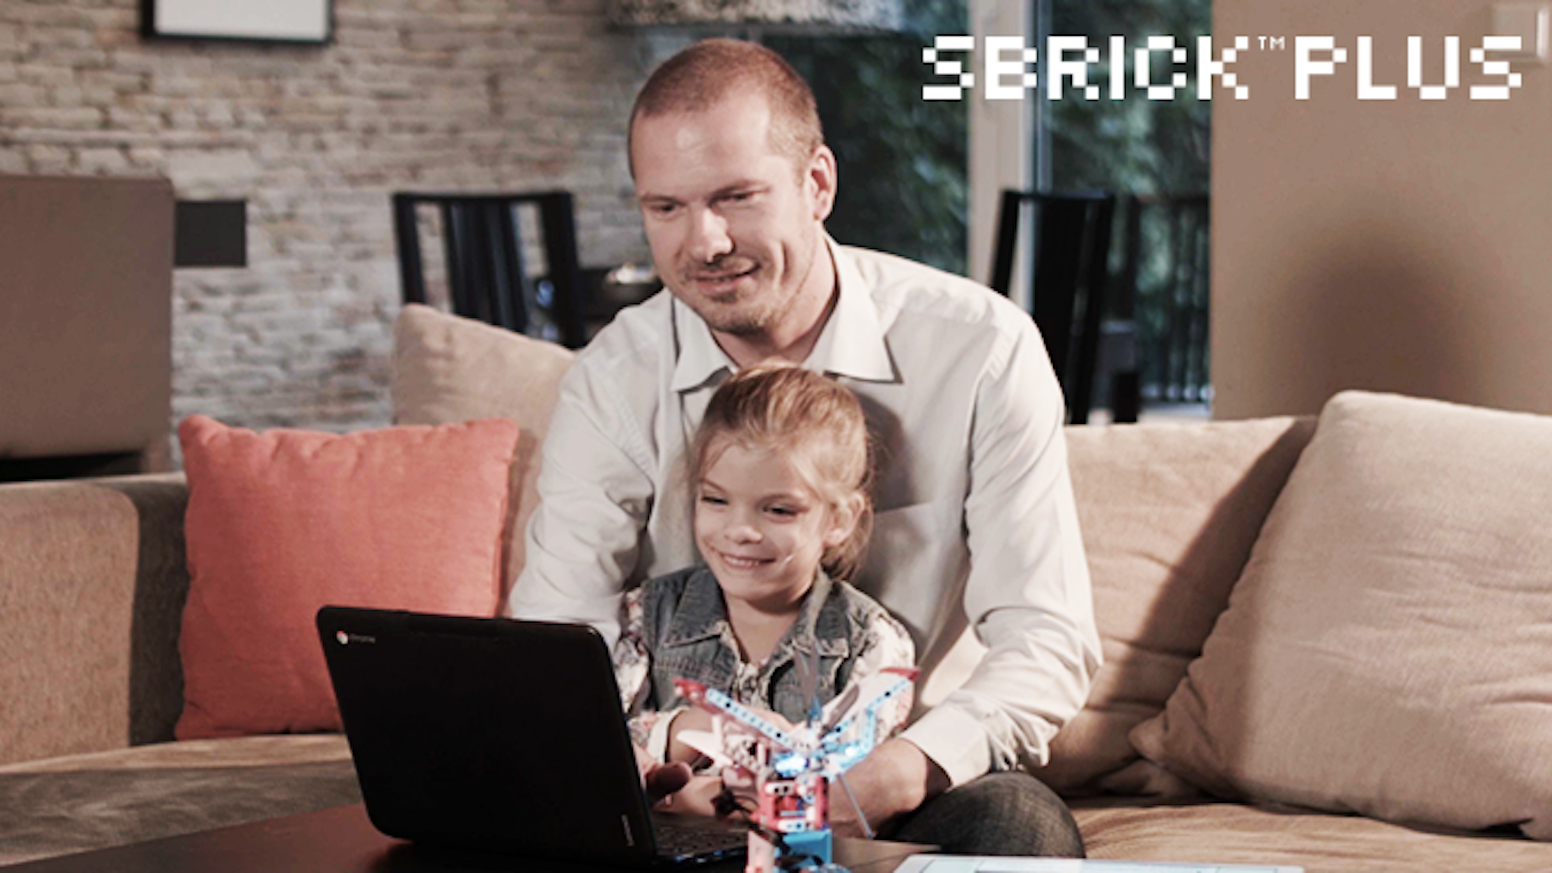 Take learning and playing with LEGO® to the next level with sensors! Build creations with SBrick Plus and make them interactive!